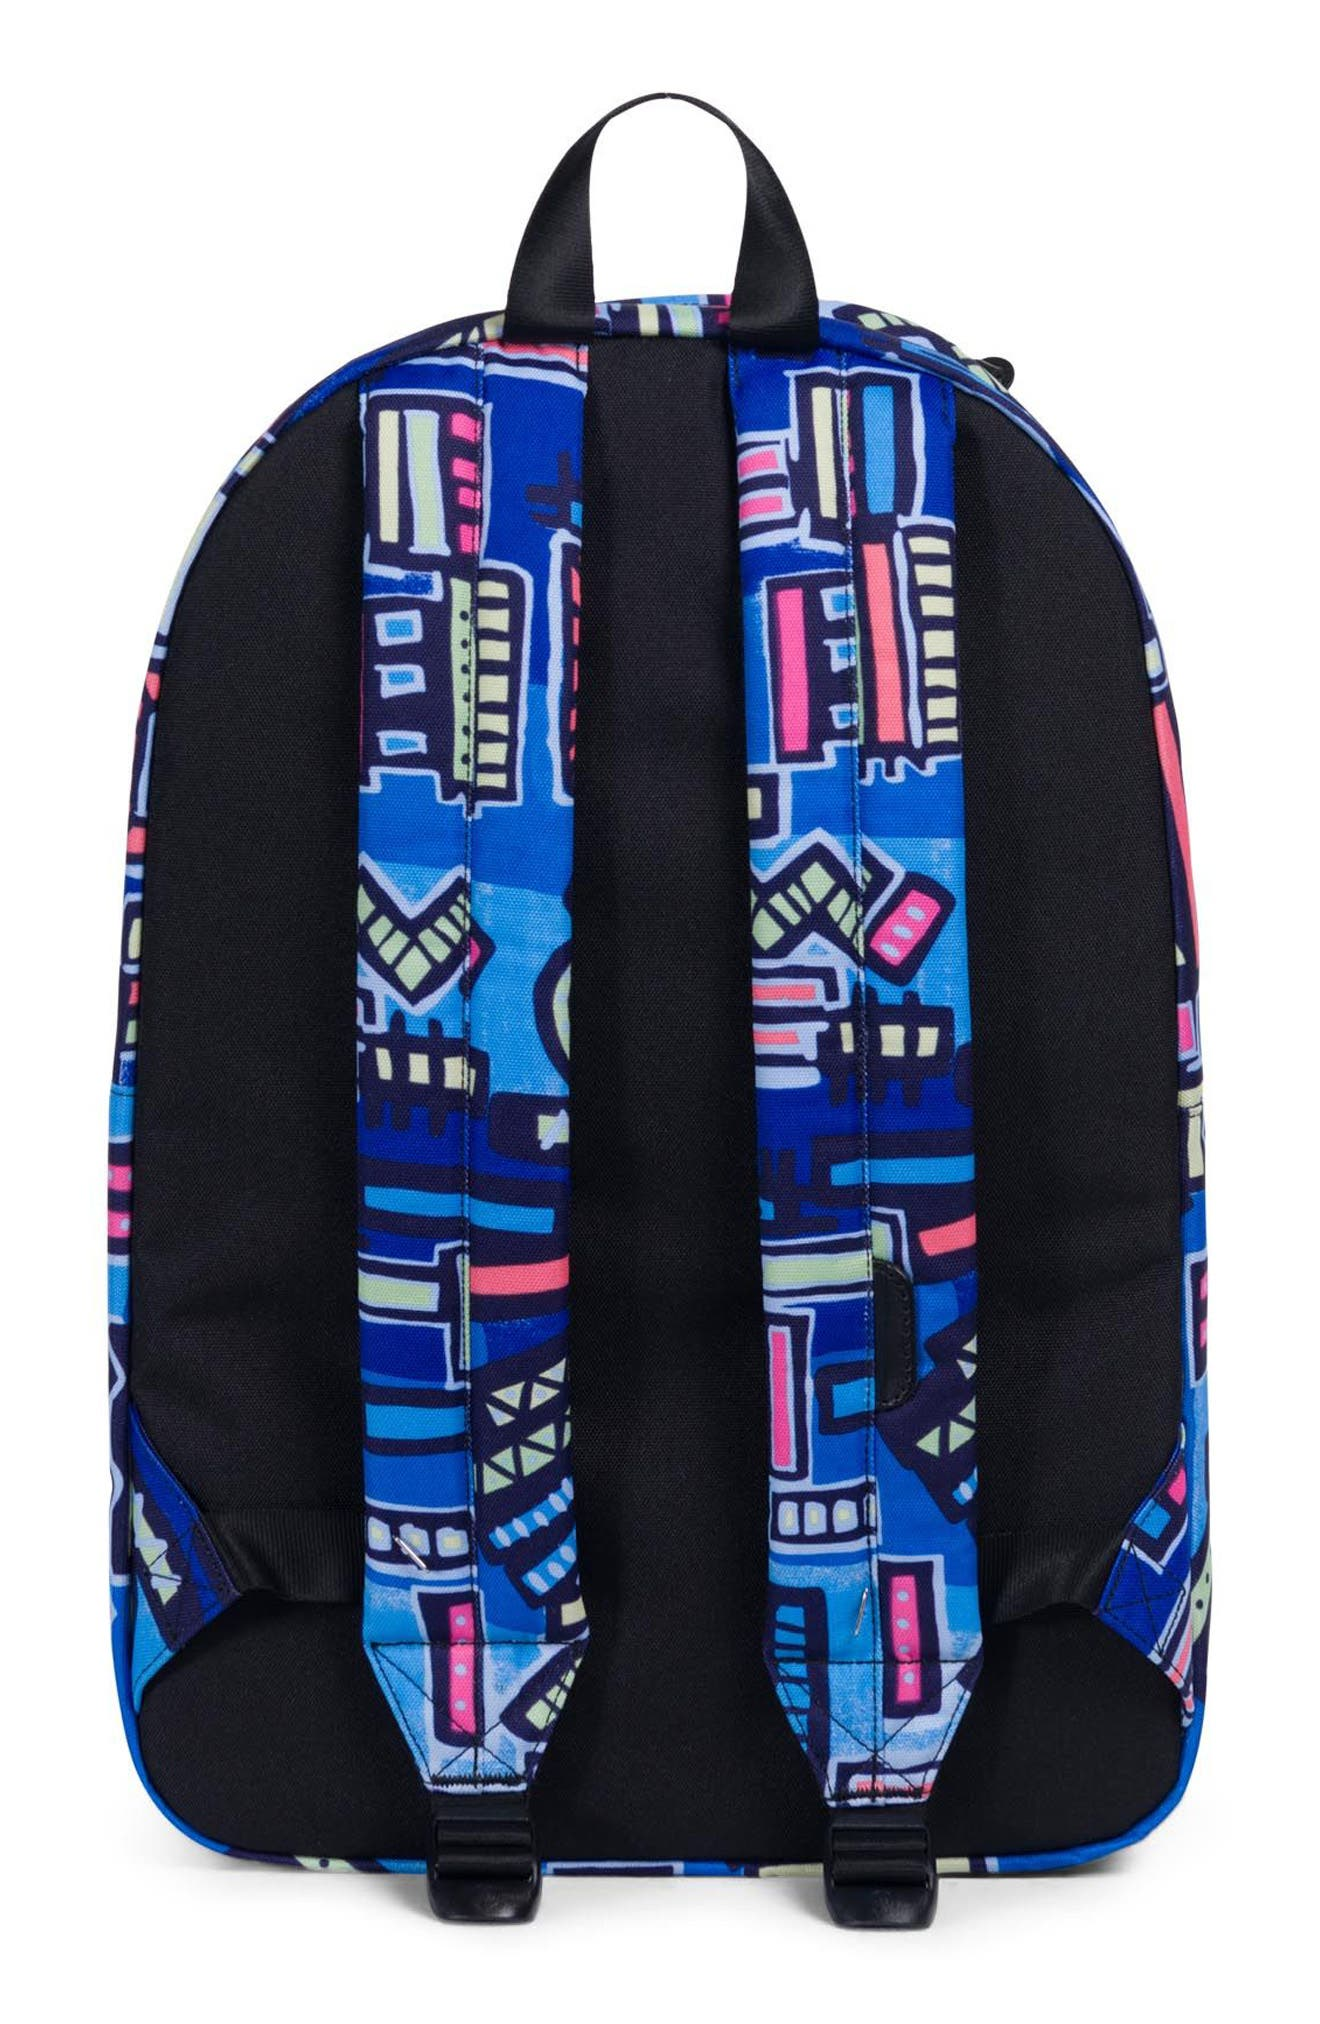 Winlaw - Hoffman Backpack,                             Alternate thumbnail 3, color,                             Abstract Geo Blue